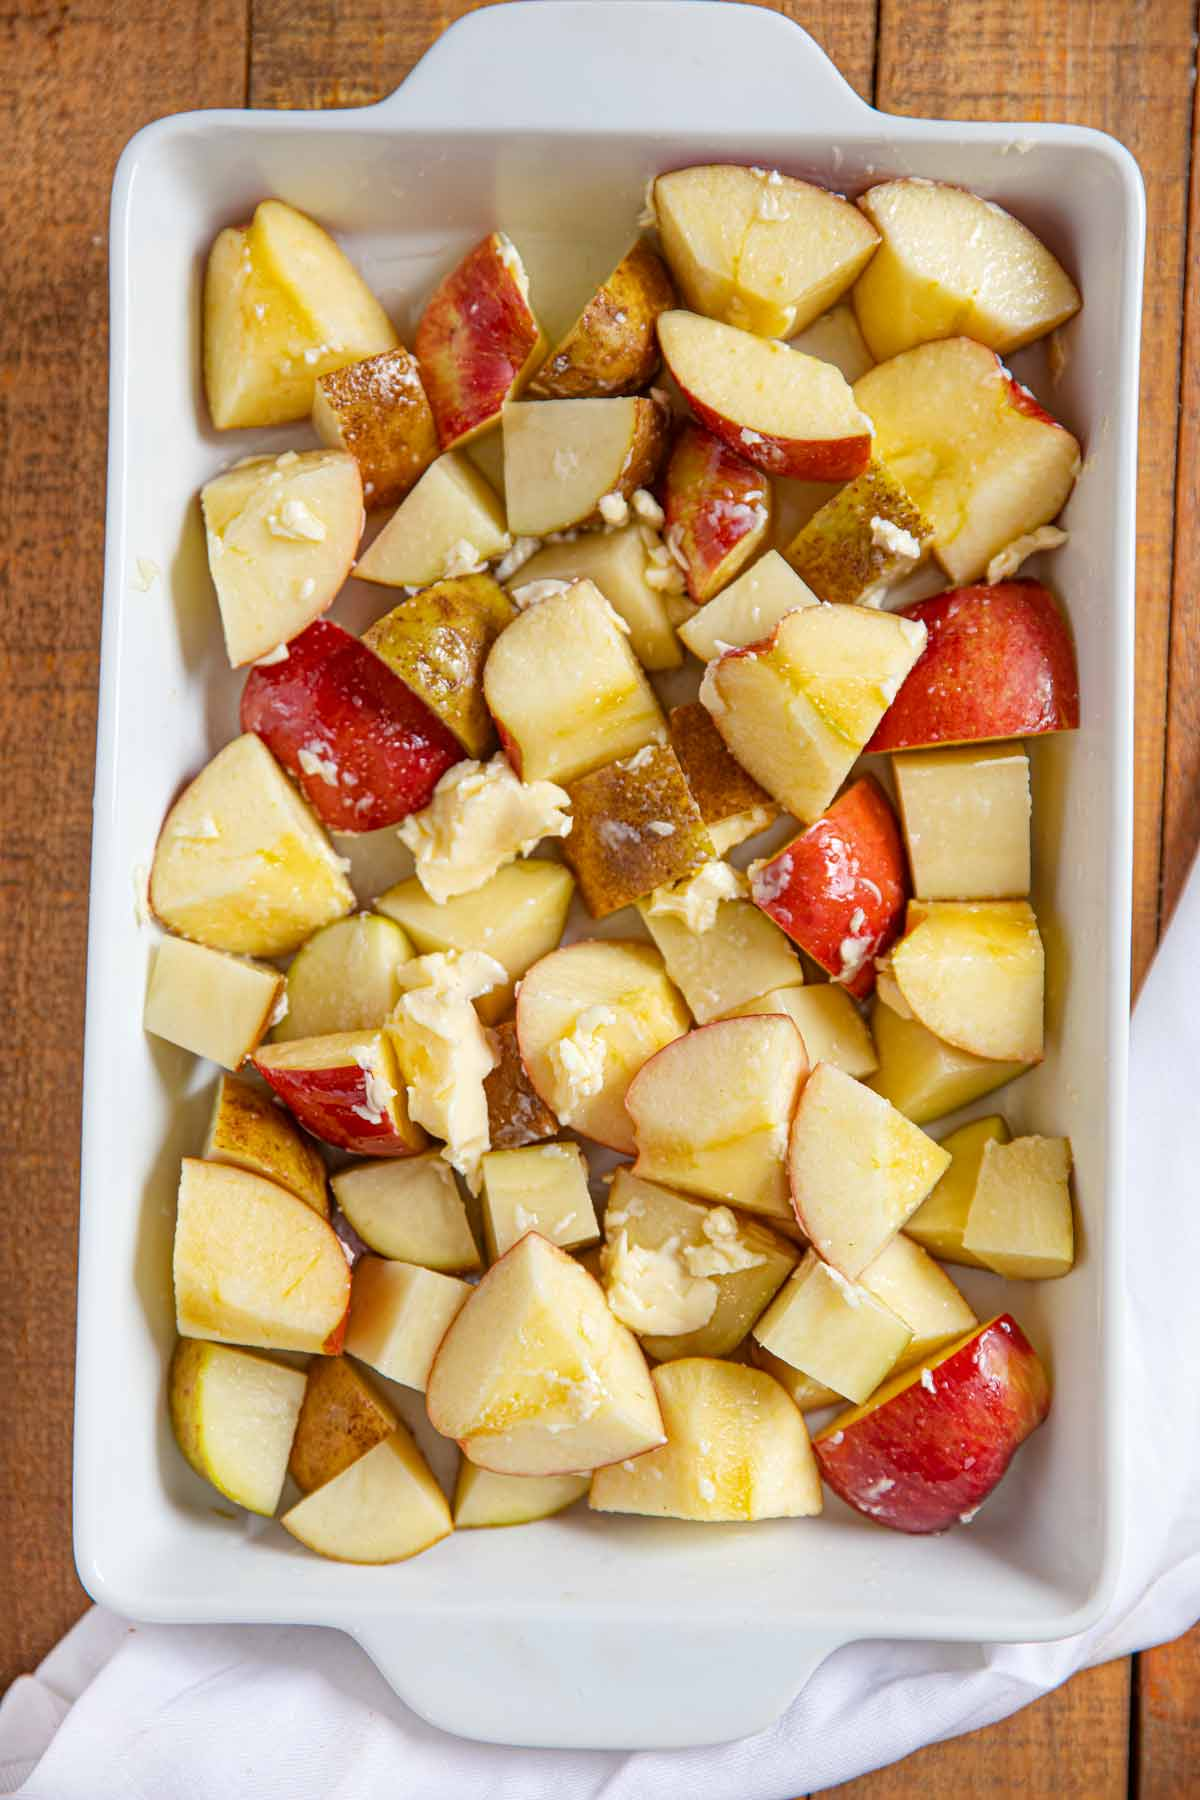 Honey Roasted Apples and Potatoes before cooking